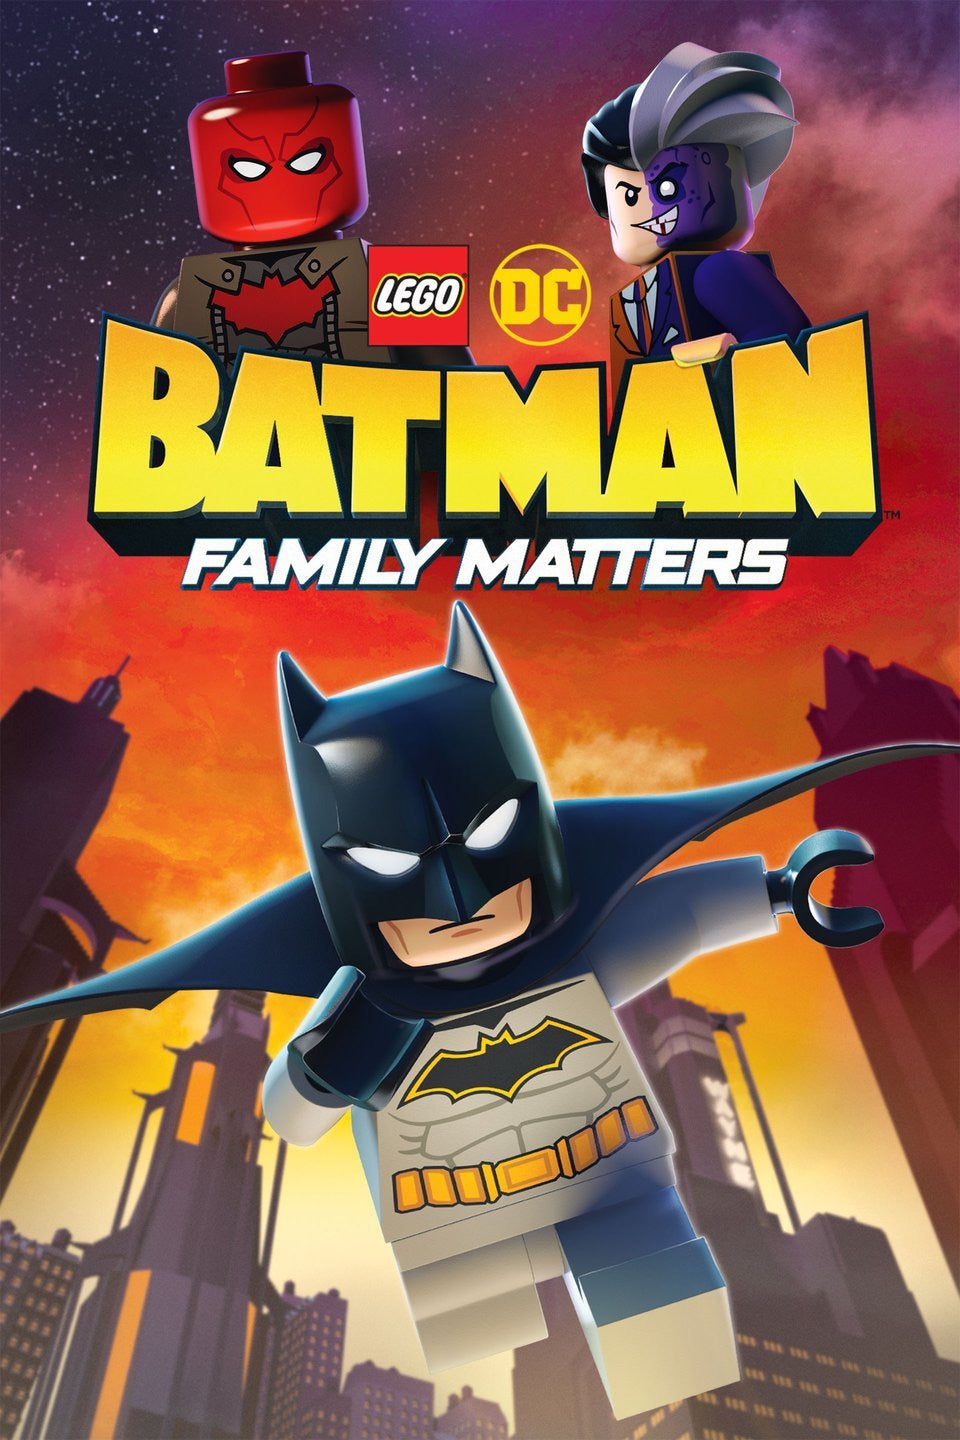 Lego Batman: Family Matters (2019) Vudu or Movies Anywhere HD code